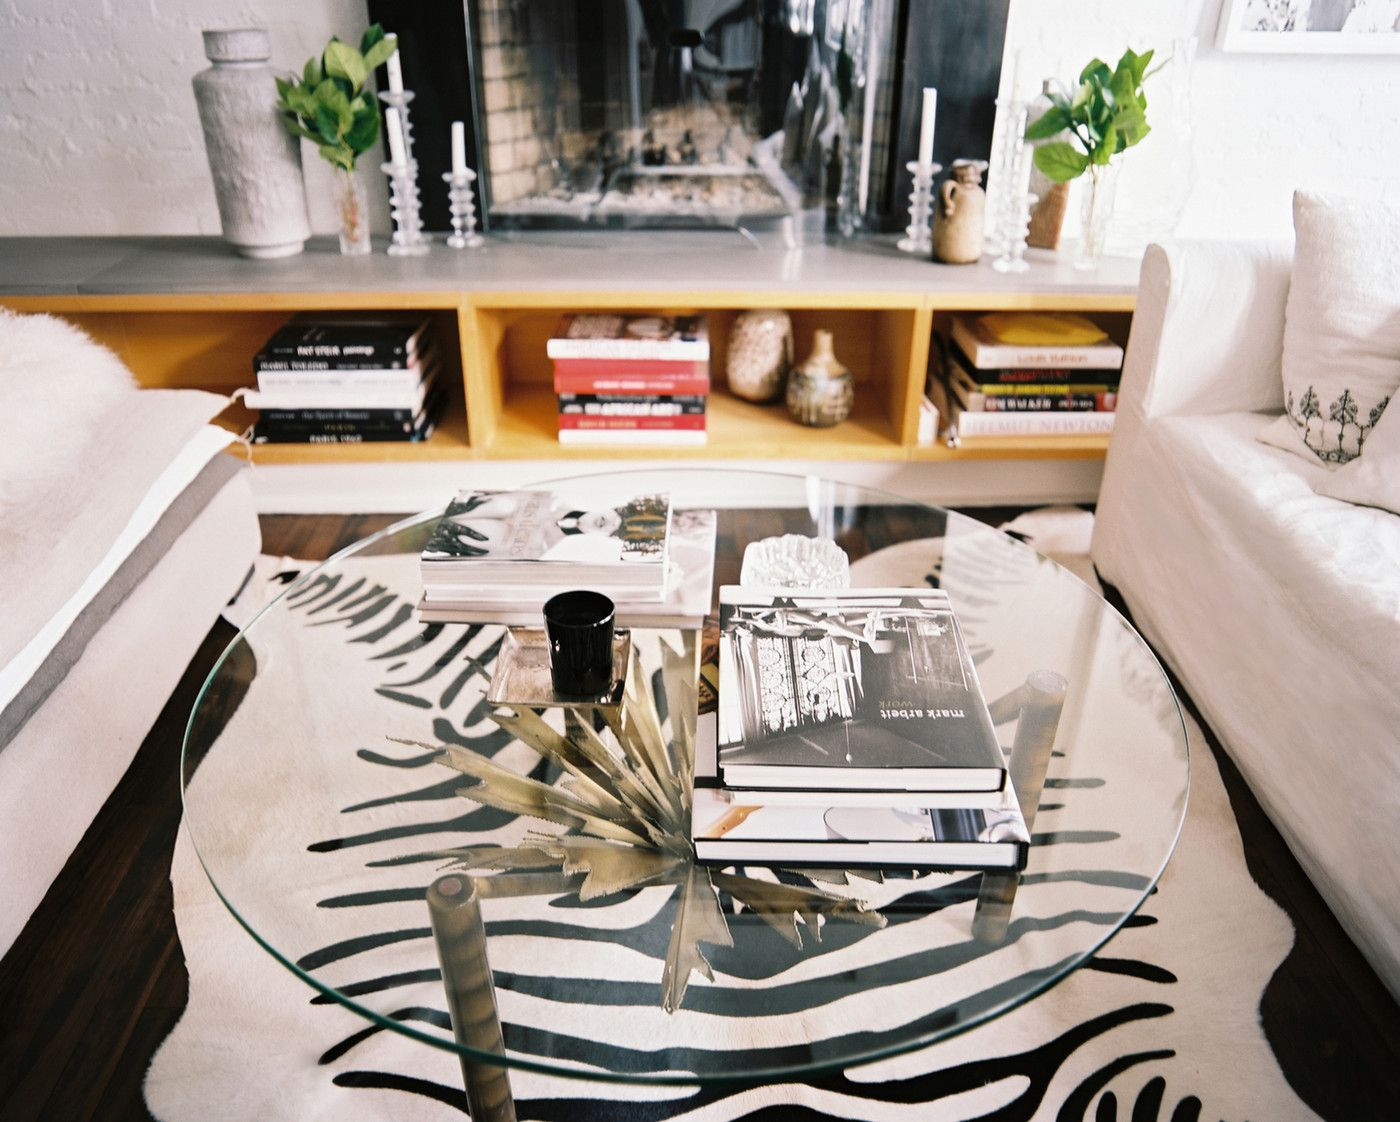 Modern Urban  Coffee Table: A glass coffee table atop a zebra-print rug in a neutral living space.